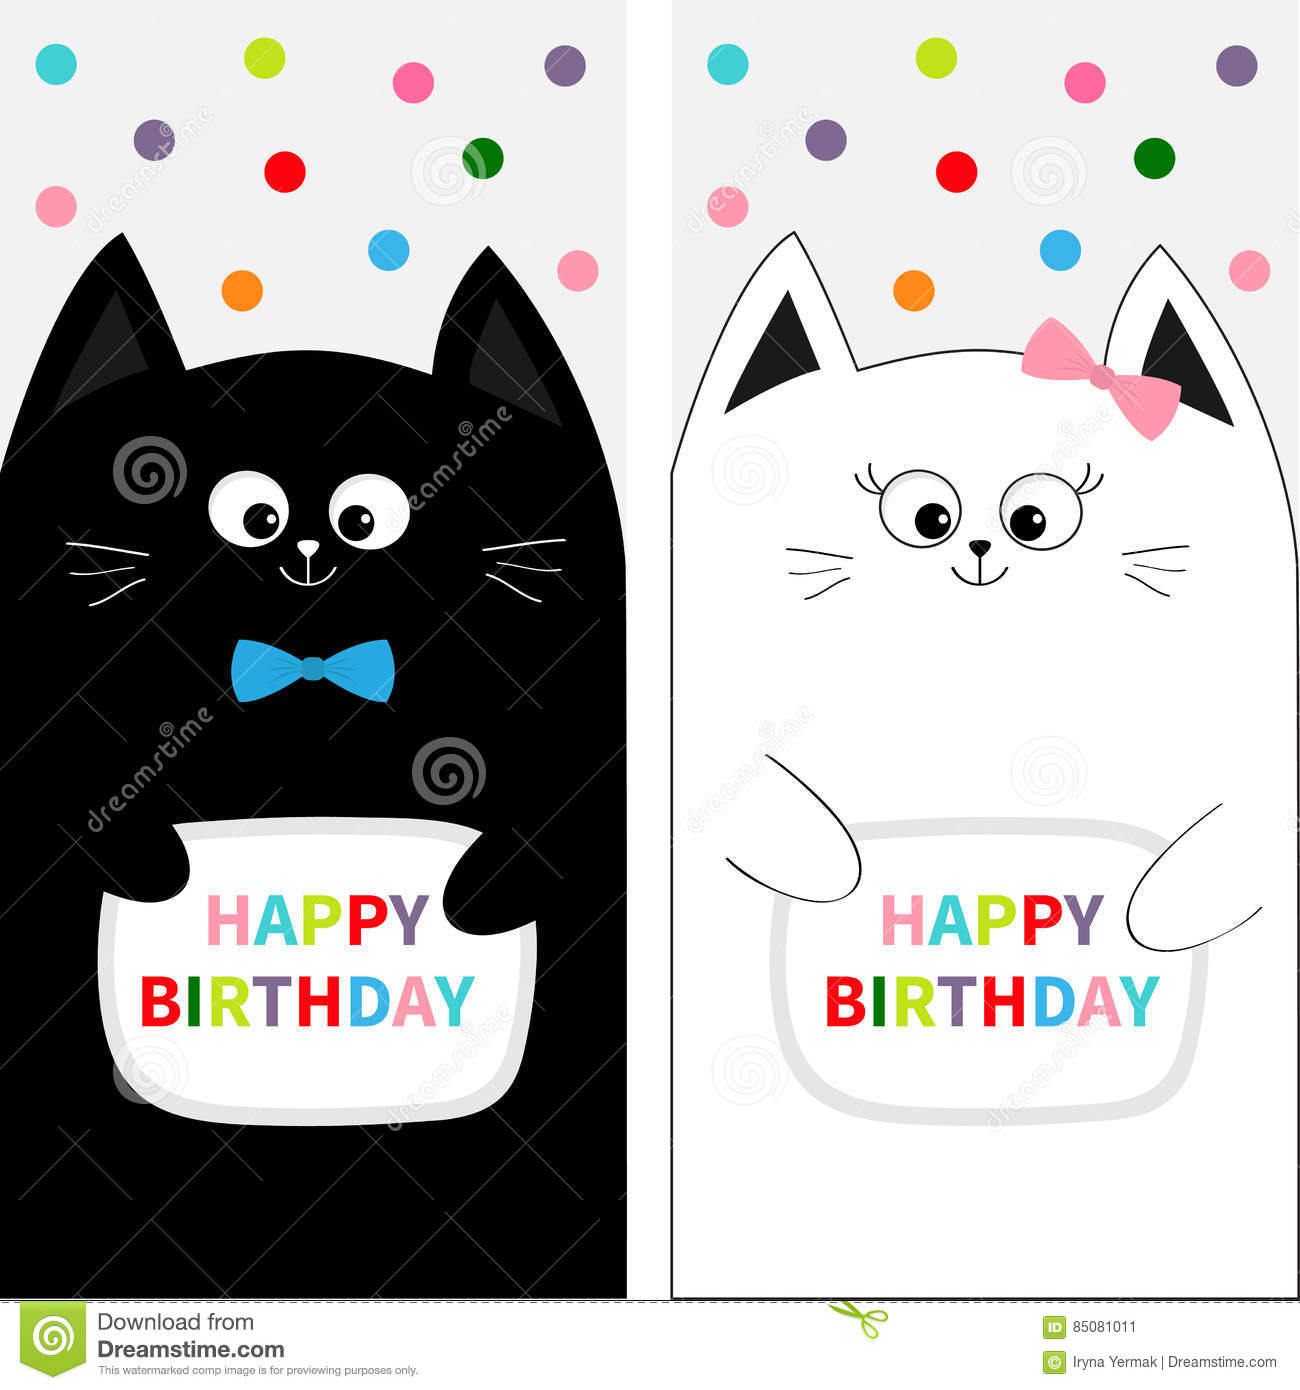 Flyer Poster Set Cute Funny Cartoon Character Happy Birthday Greeting Card Flat Design White Background Colorful Round Dots Vector Illustration